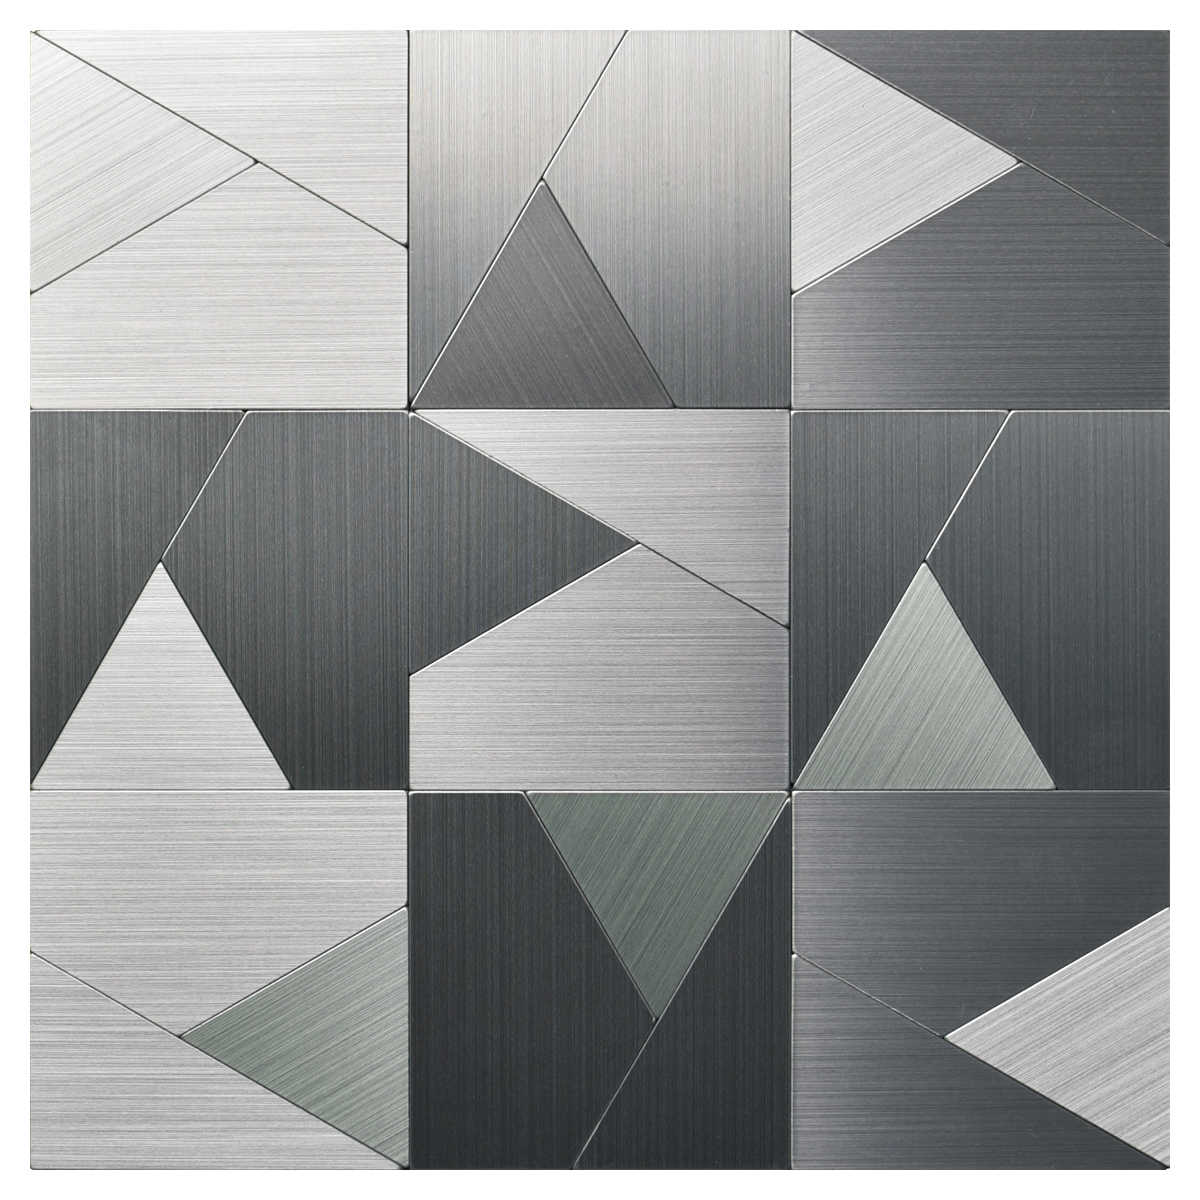 10 Tiles 12'x12' Peel and Stick Metal Backsplash Tile, Brushed Stainless Steel in Triangle Jigsaw